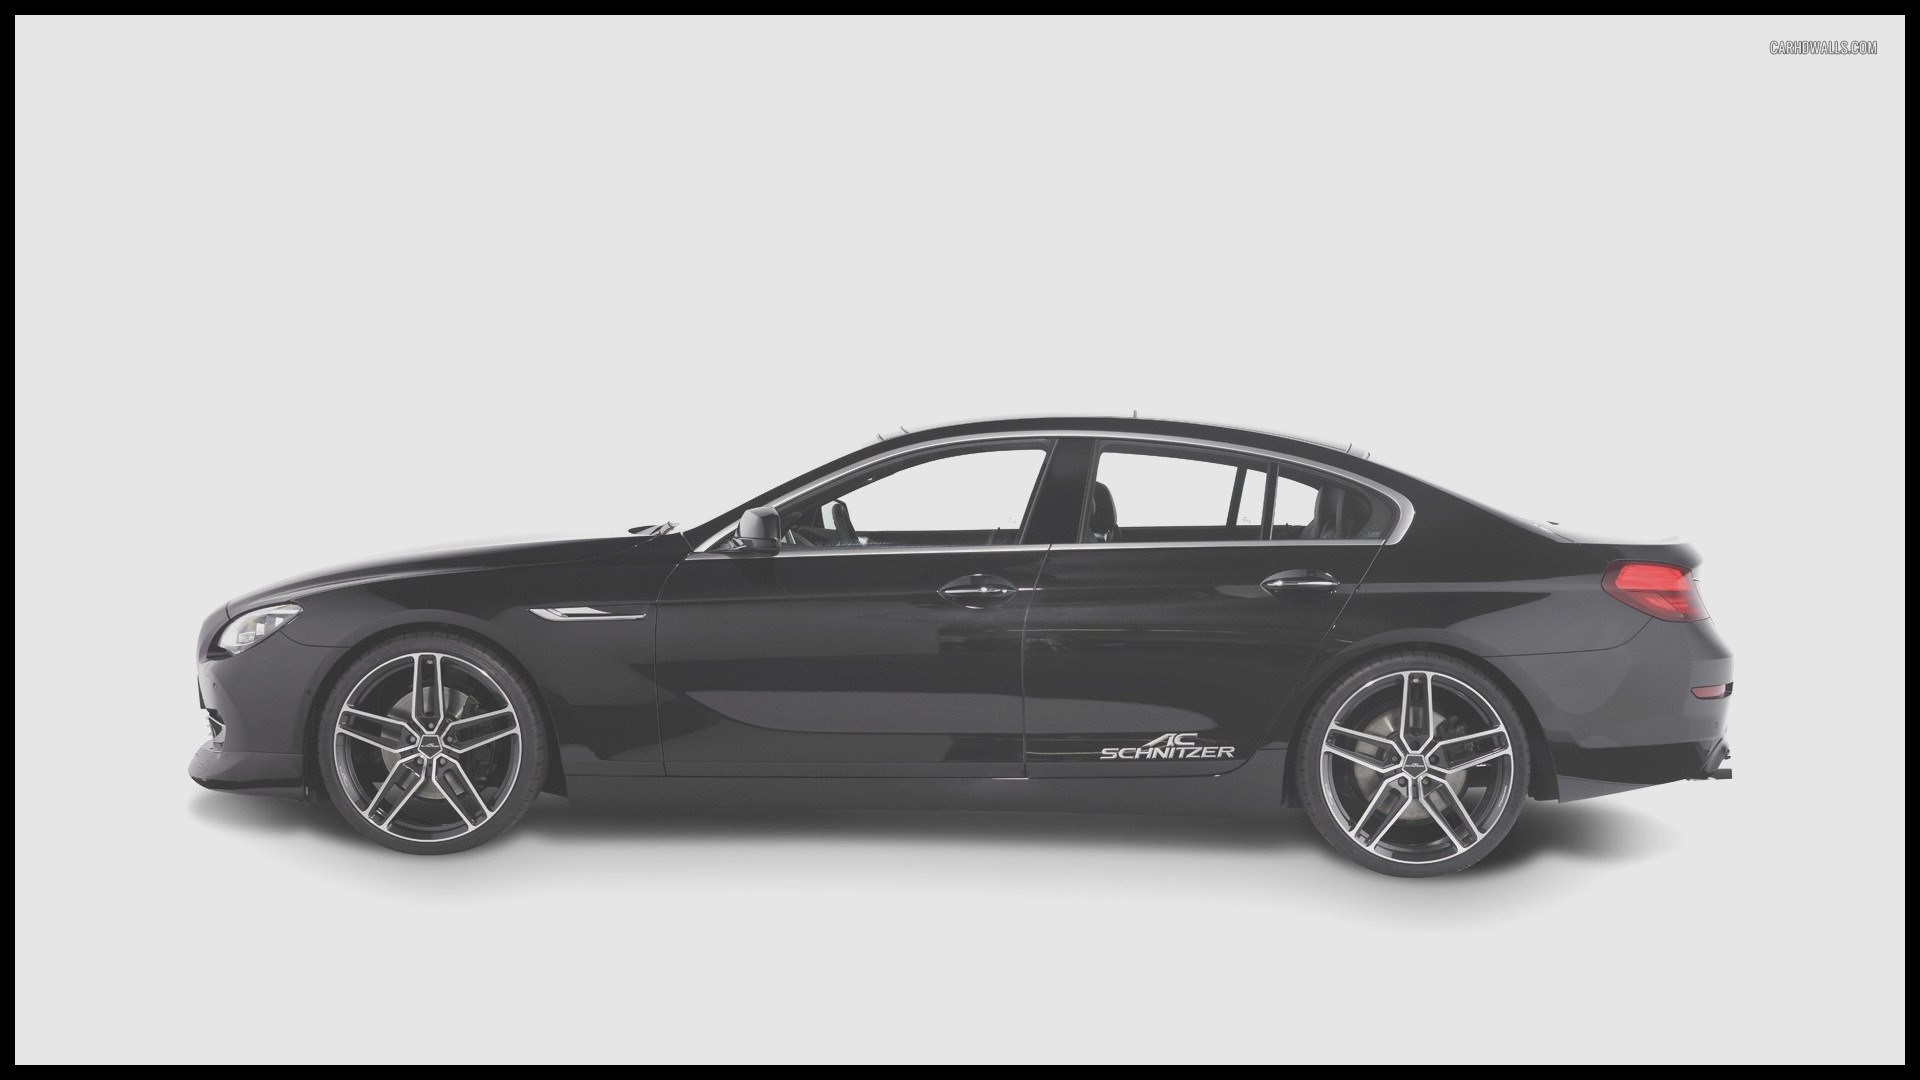 Cool Review About Bmw 328i Coupe With Exciting For Desktop Bmw 645 Wallpaper